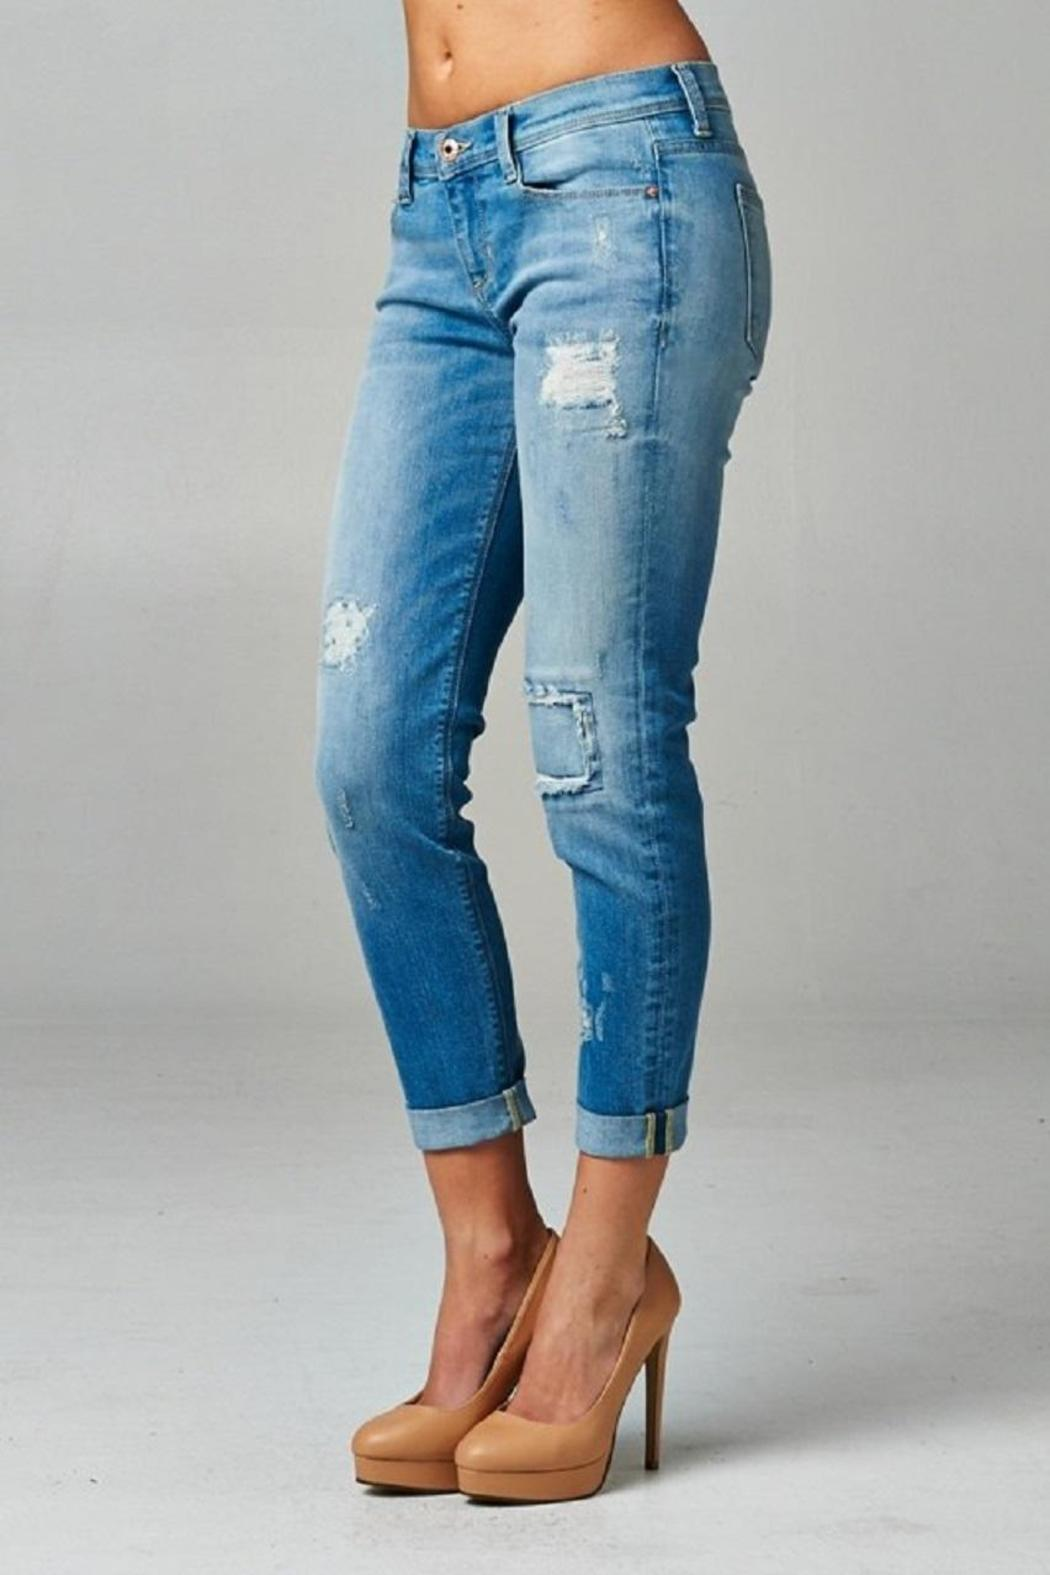 Skinny jeans rolled up